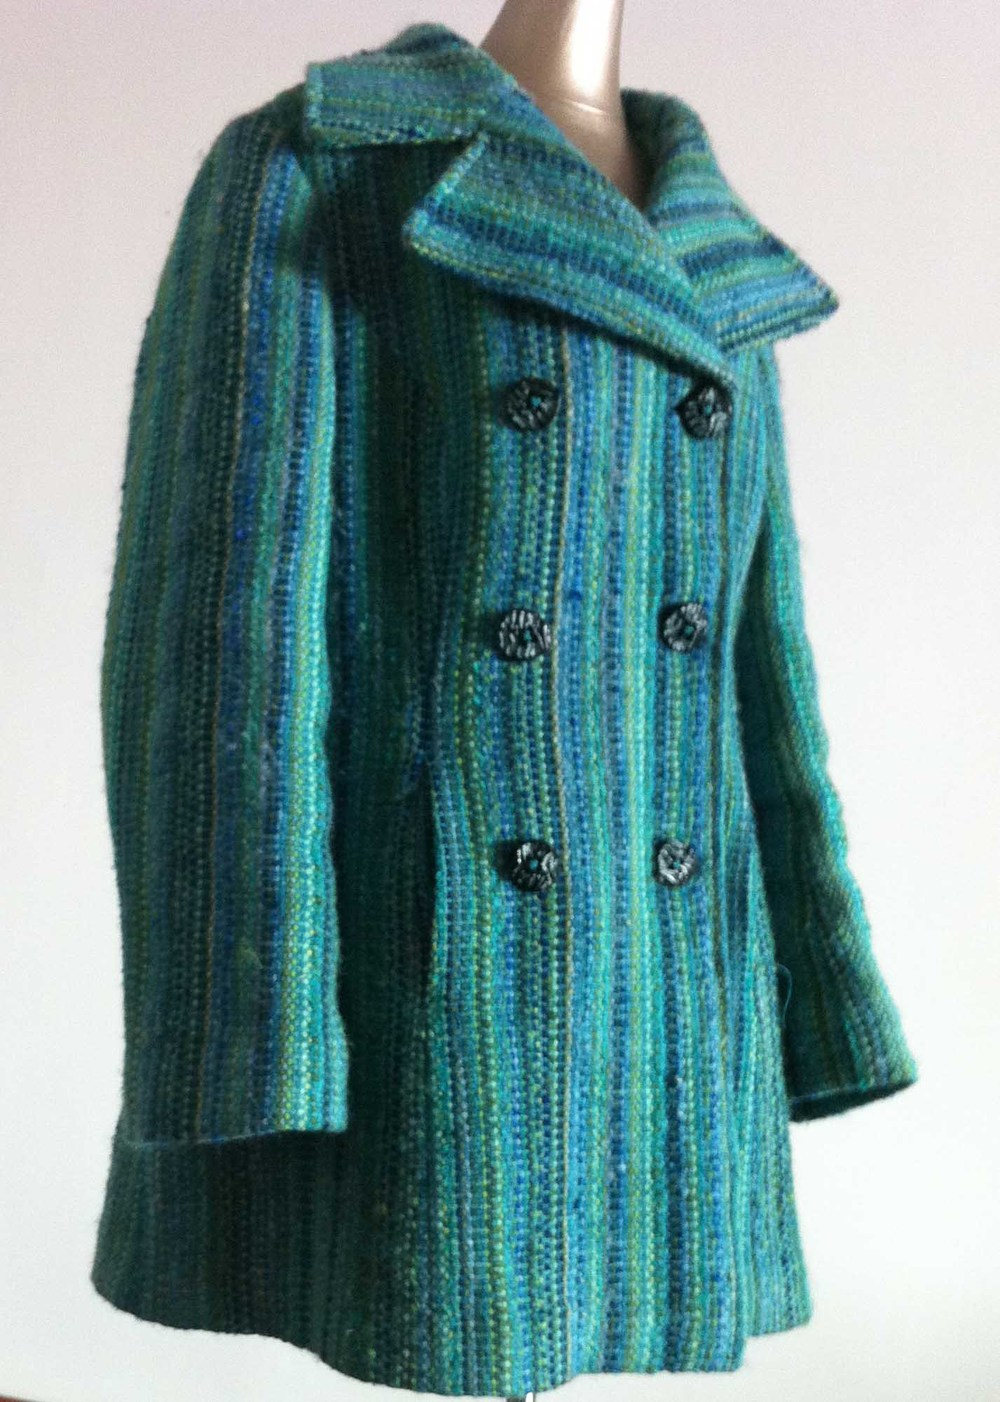 handwoven coat by cate carter-evans